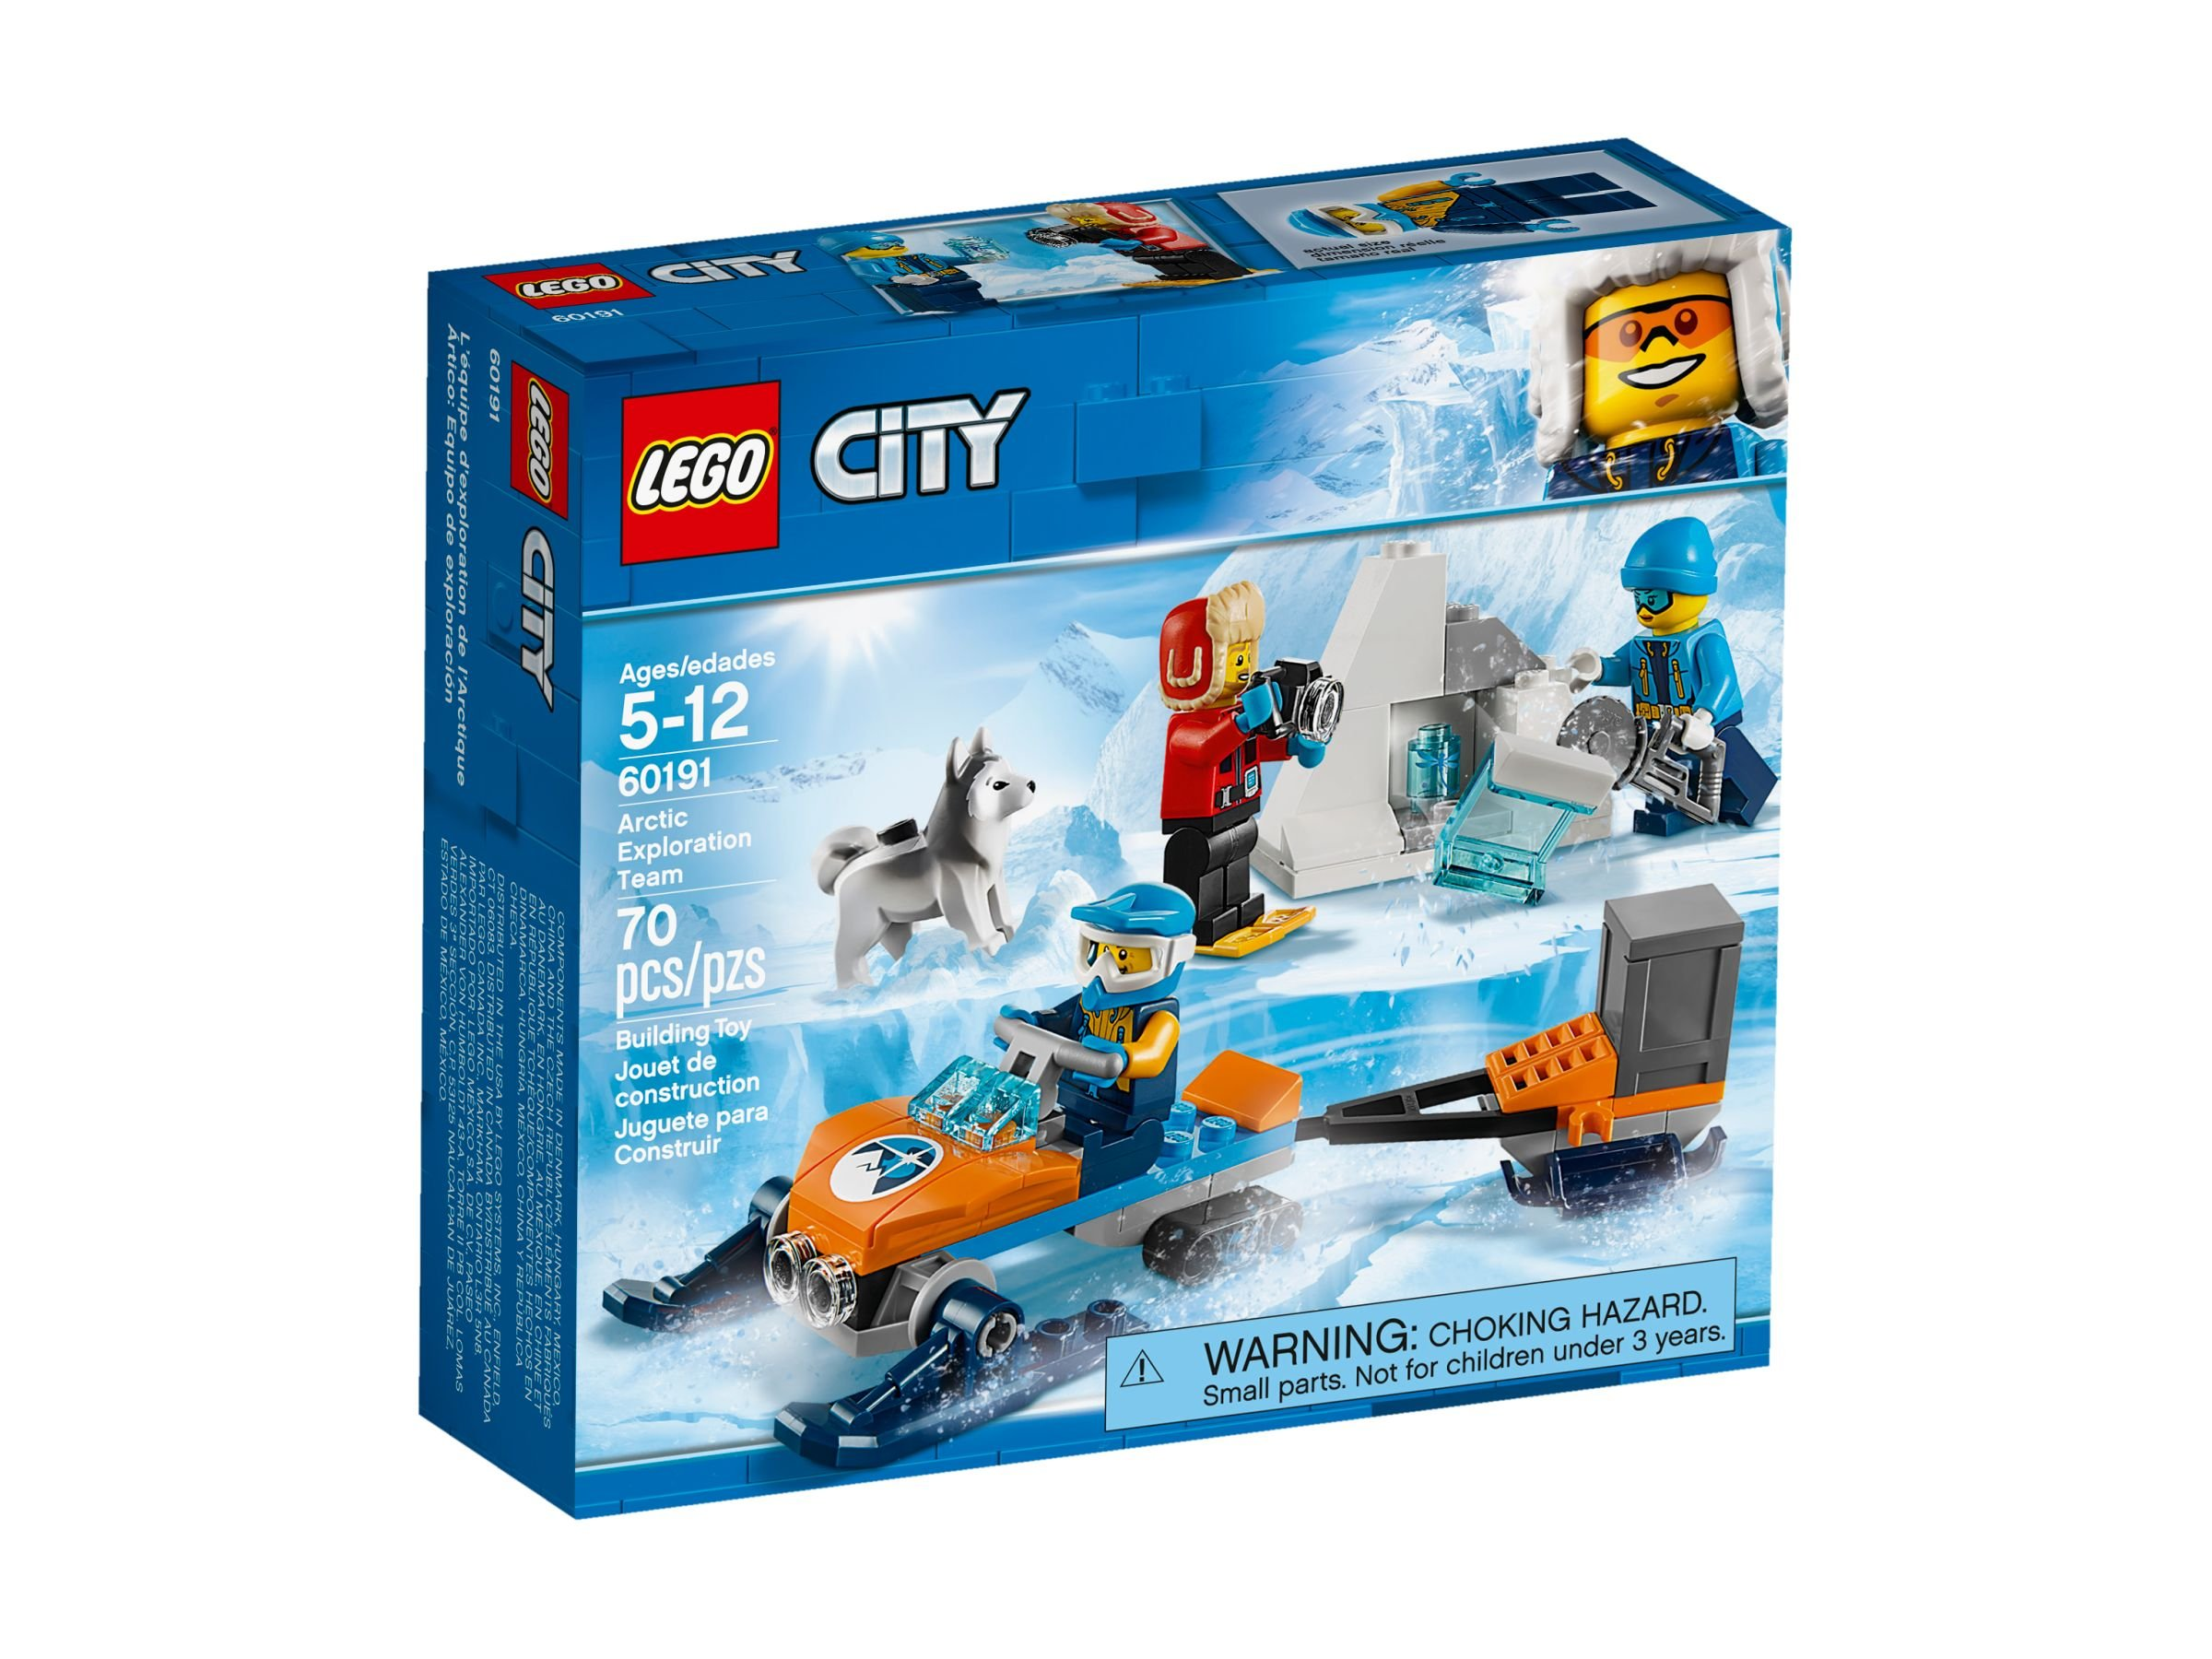 LEGO City 60191 Arktis-Expeditionsteam LEGO_60191_alt1.jpg